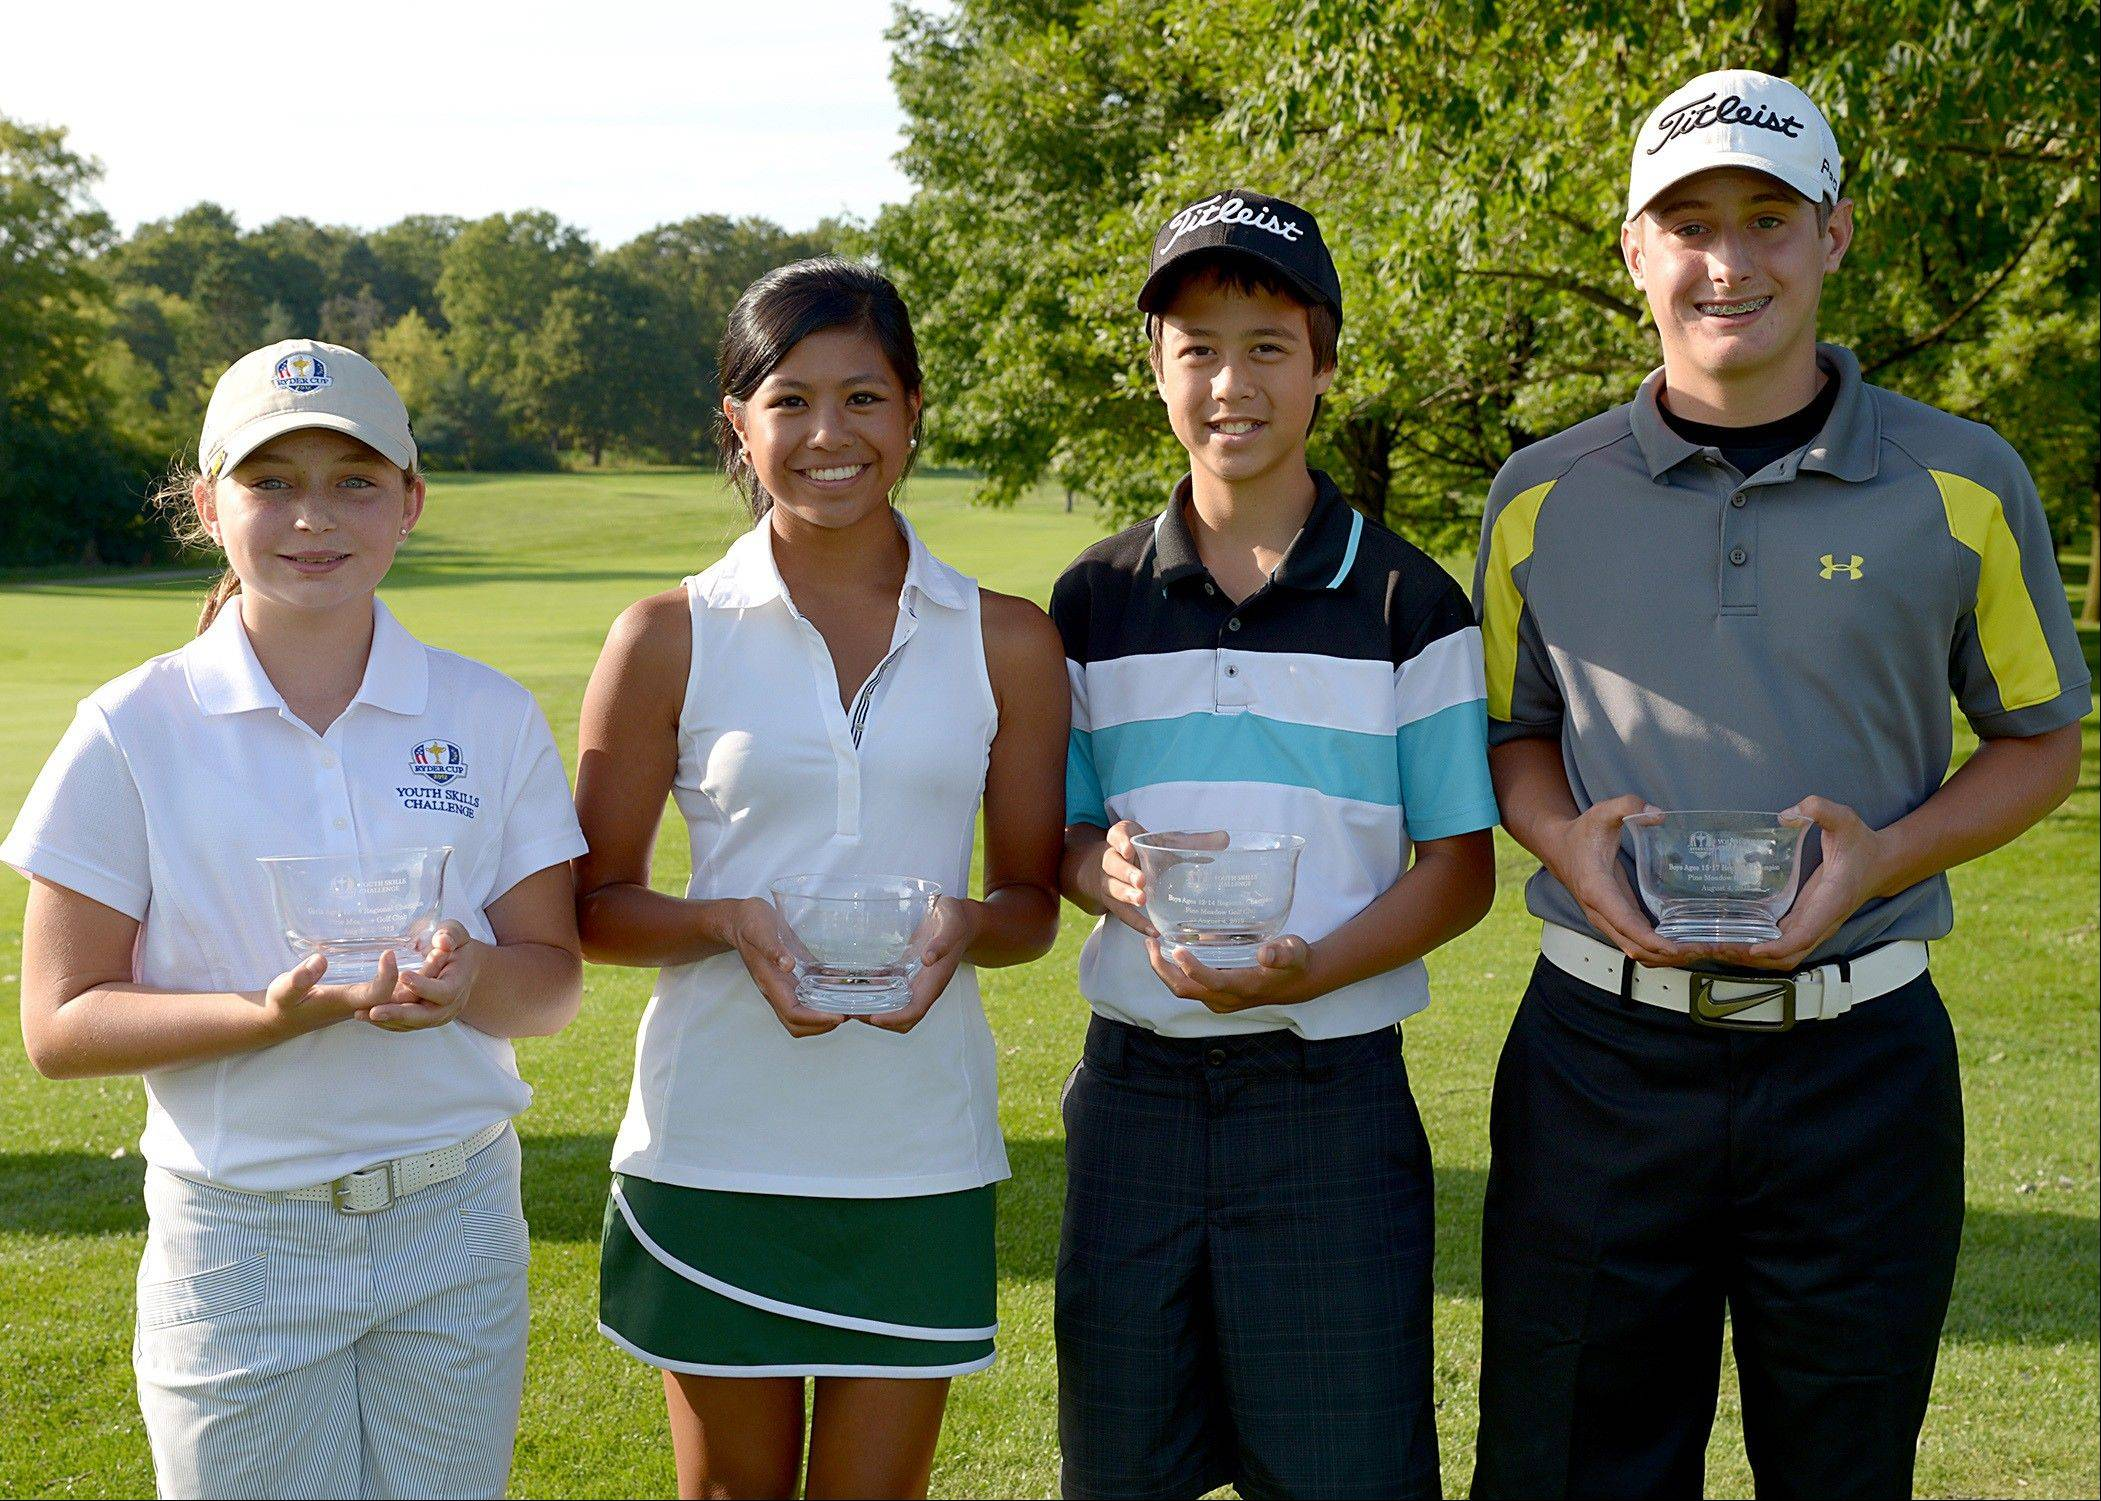 These junior golfers joined dozens of others between the ages 12-17 to compete last month in the 2012 Ryder Cup Youth Skills Challenge Regional at Pine Meadow Golf Club in Mundelein. The finals take place Friday at Medinah and Cog Hill, with an international team competition during Ryder Cup week at Olympia Fields.